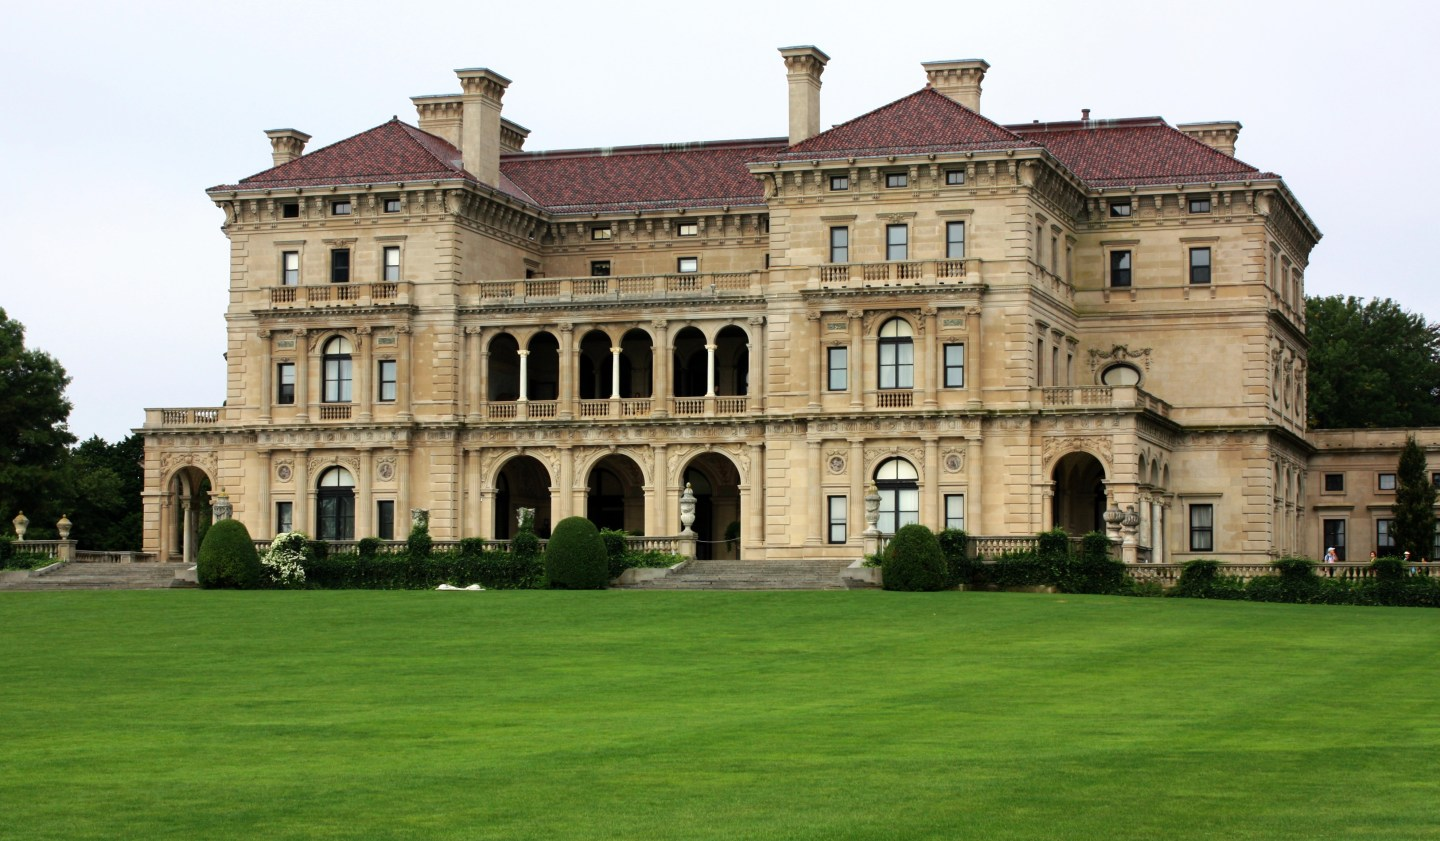 A visit to the mansions in Newport, RI